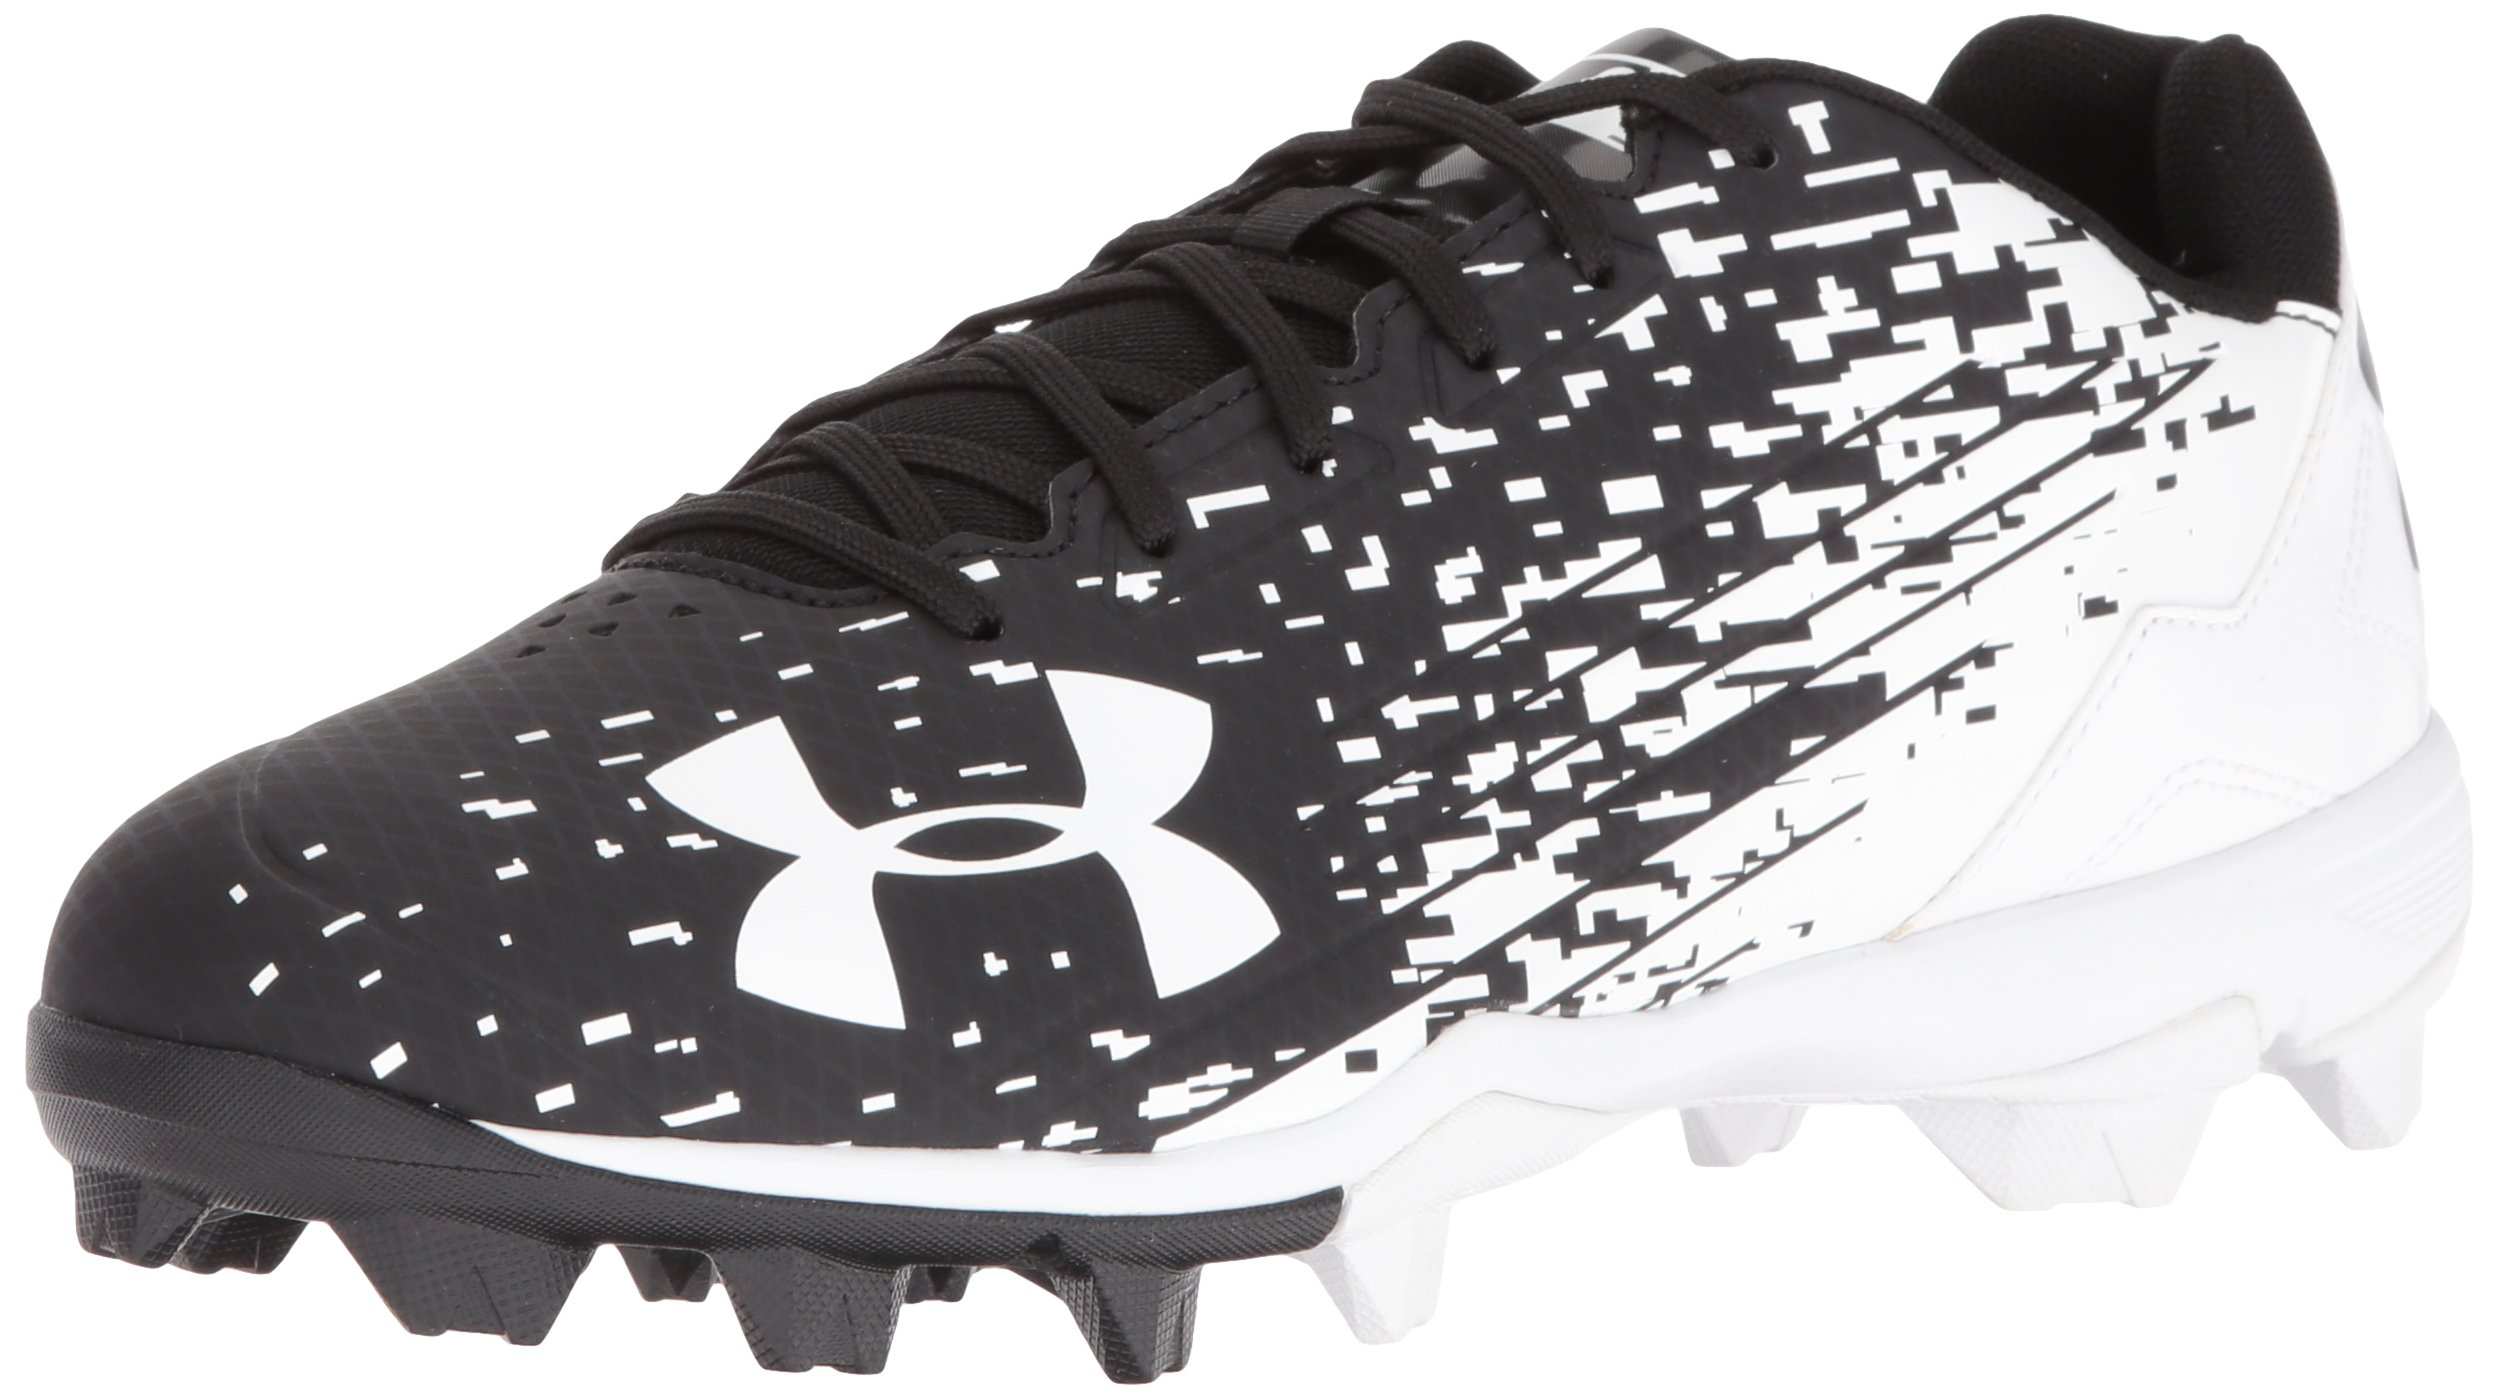 Under Armour Men's Leadoff Low RM Baseball Shoe, Black (011)/White, 9 by Under Armour